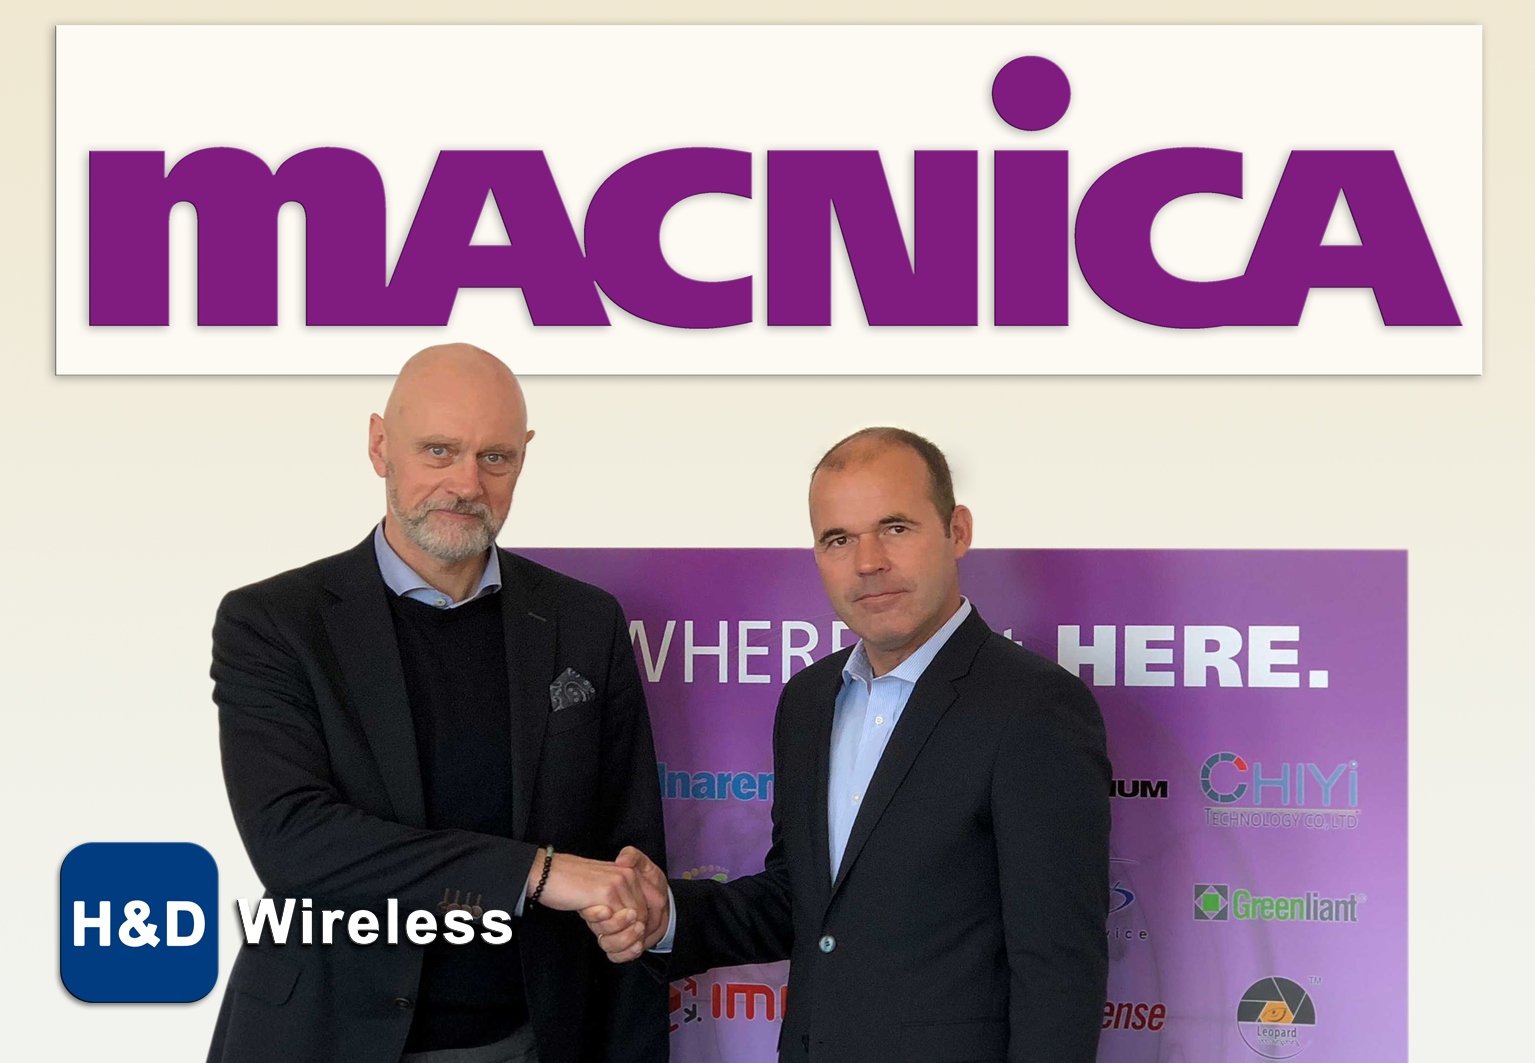 PR19_HD_Wireless_Macnica_2017_18.png